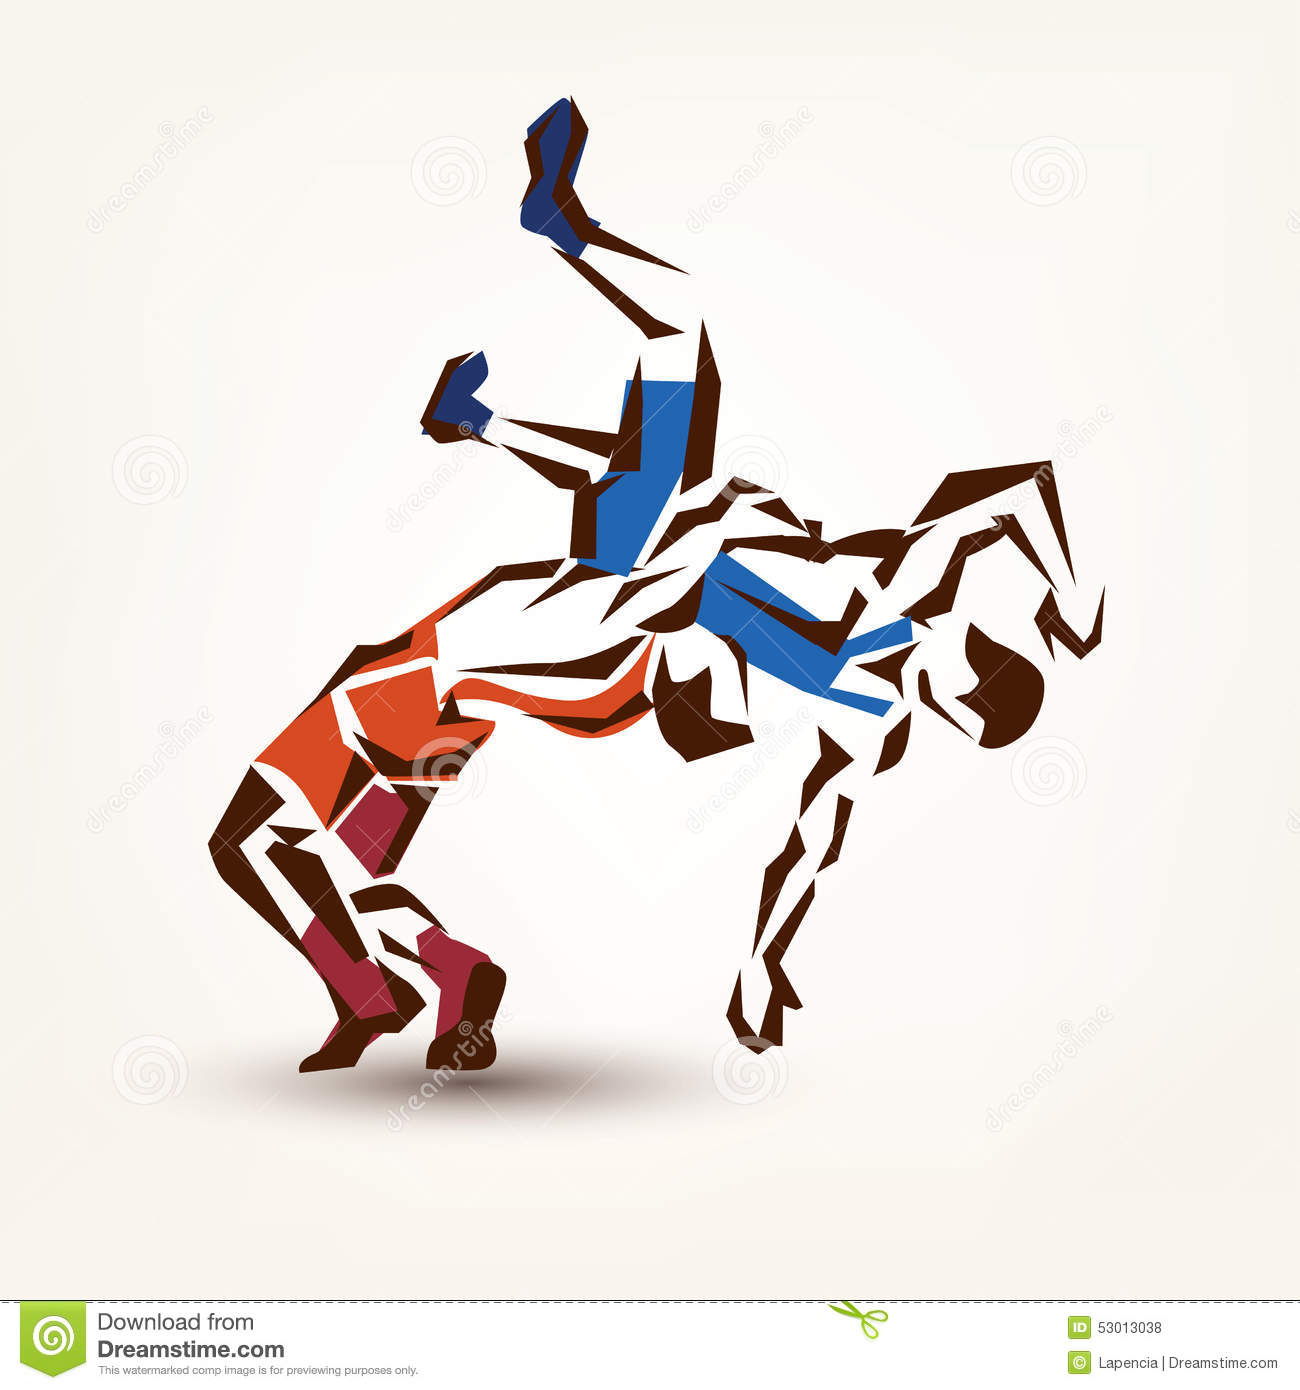 Wrestling symbol, vector silhouette of two athletes.